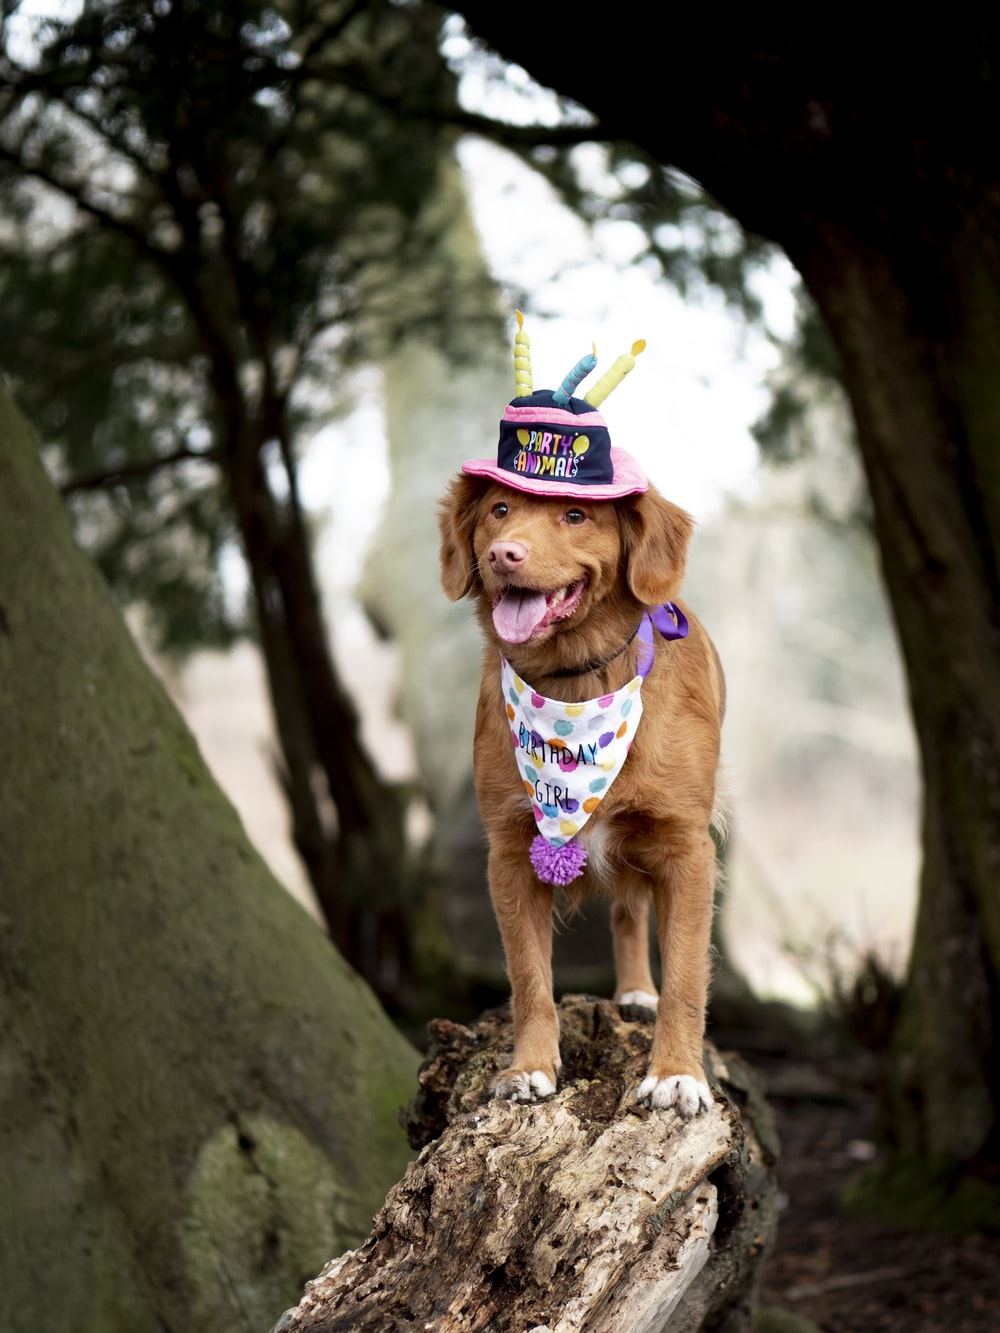 brown short coated dog wearing green and yellow hat